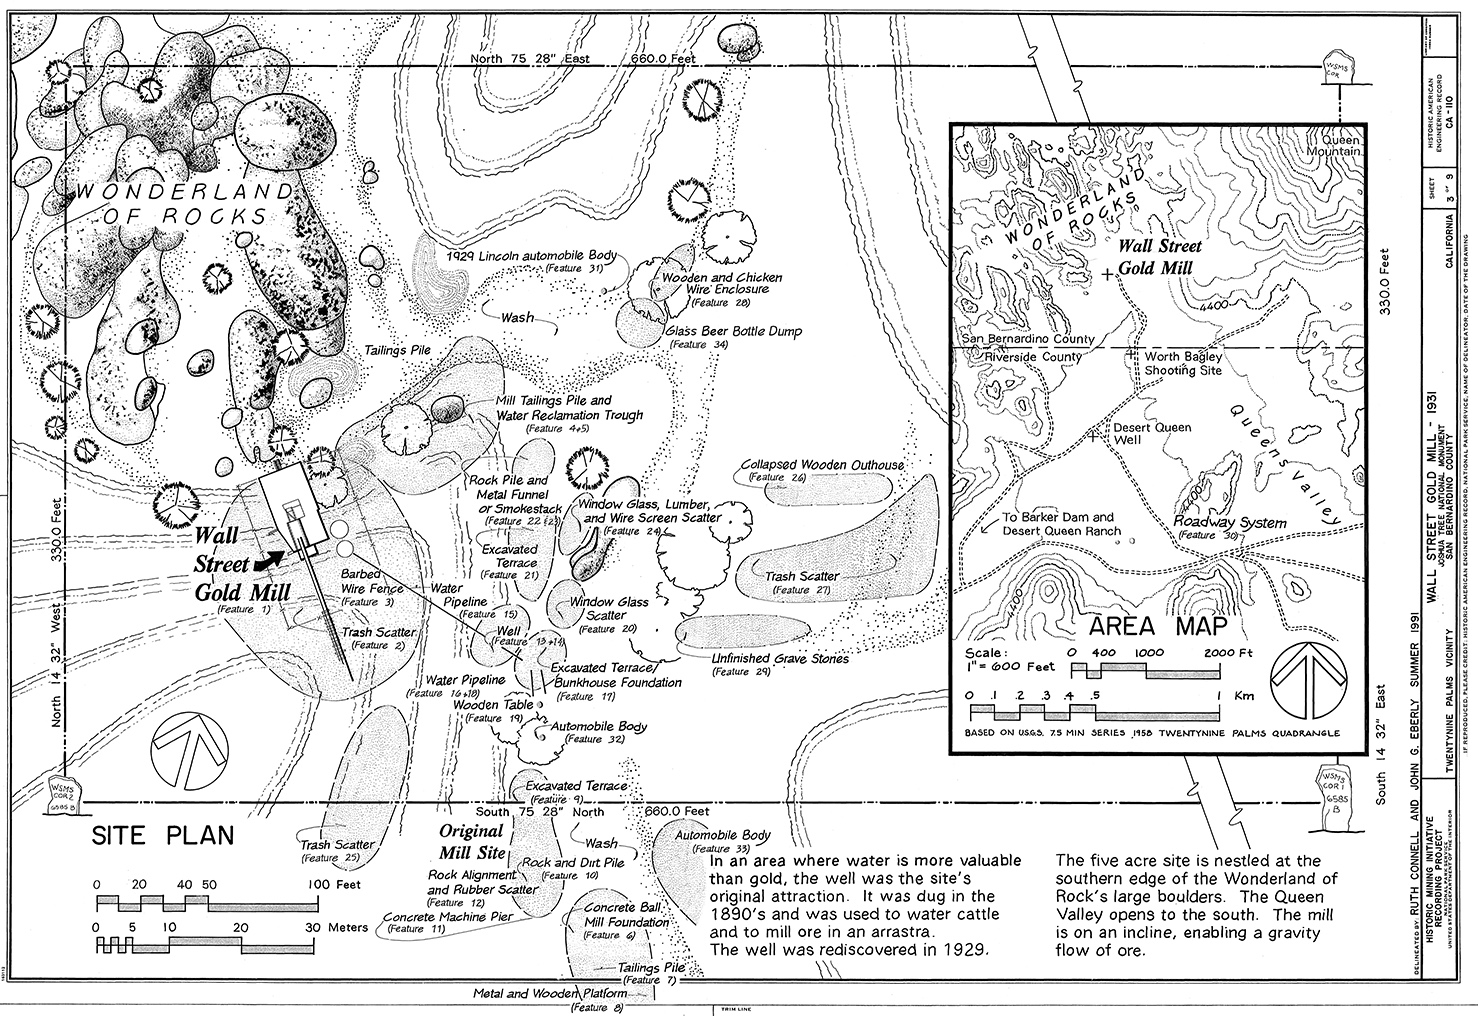 Credit: Historic American Engineering Record, National Park Service, Ruth Connell and John G. Eberly, 1991.